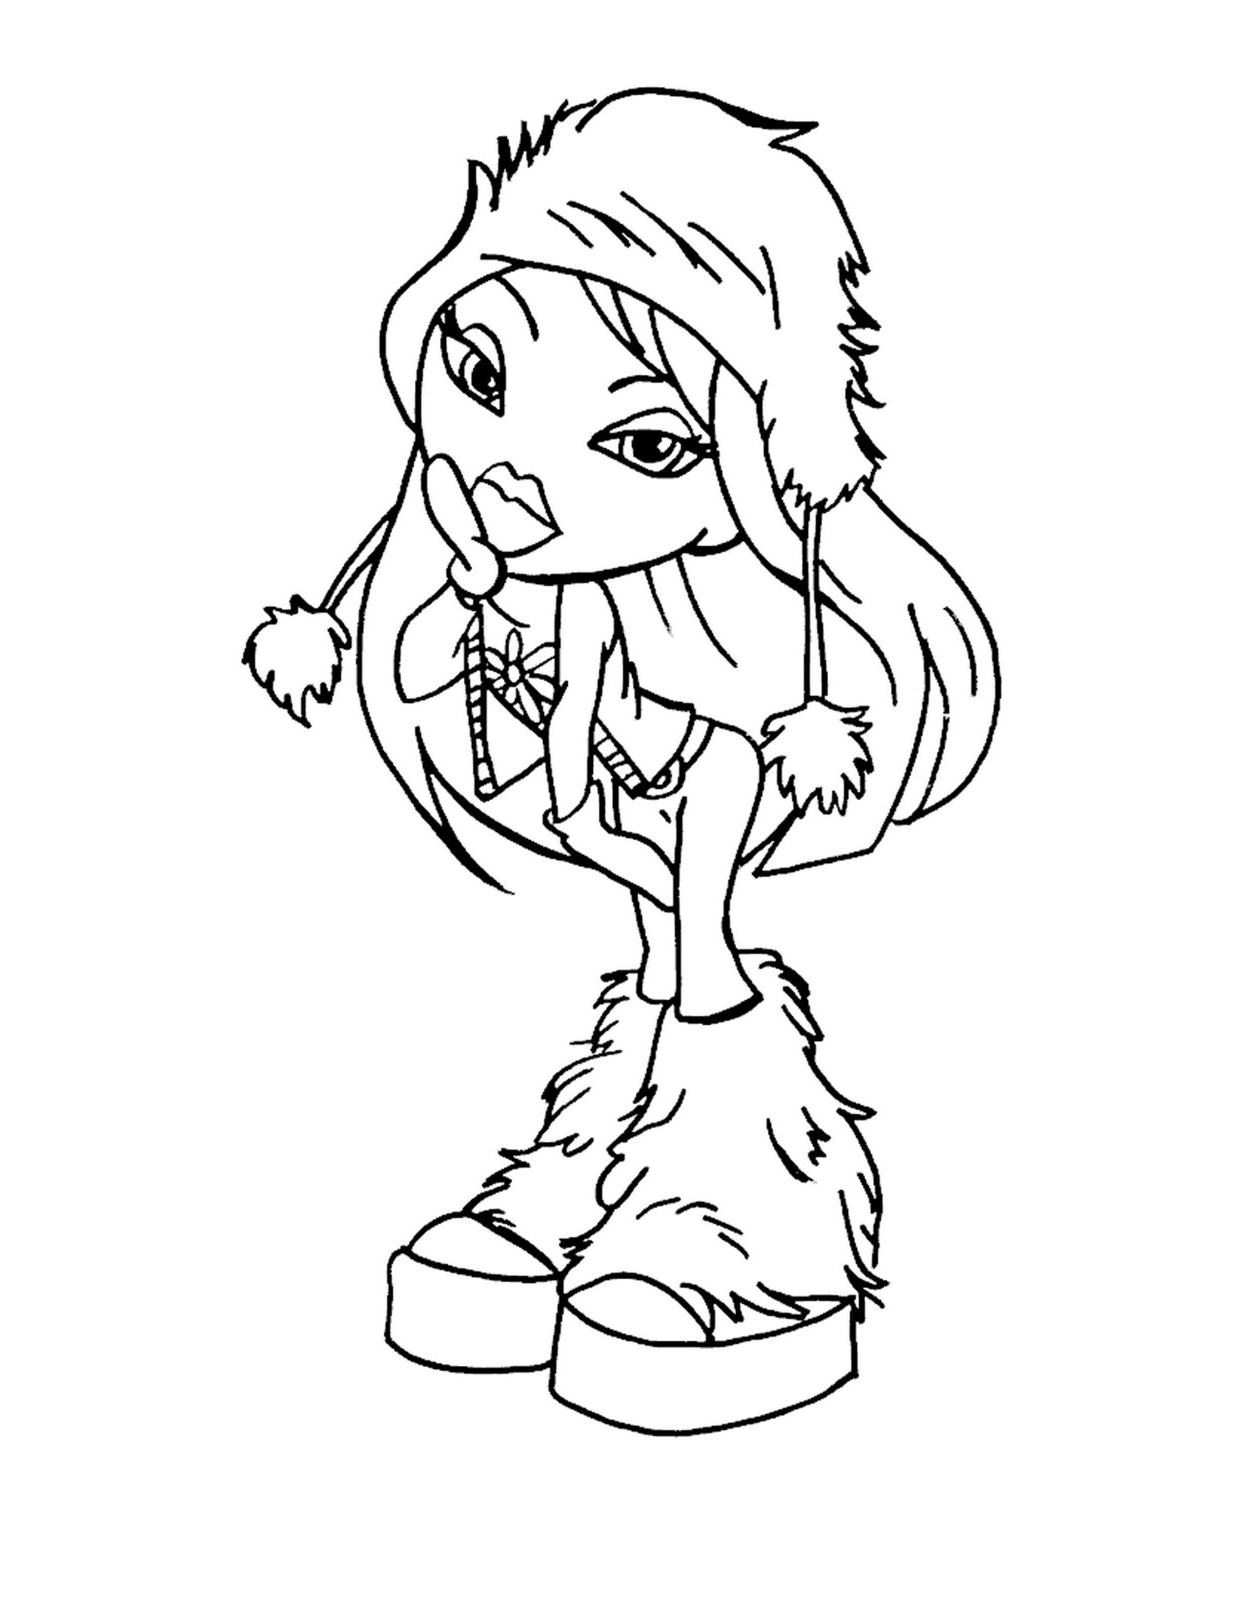 bratz coloring in pages | Winter bratz coloring pages - Coloring Pages